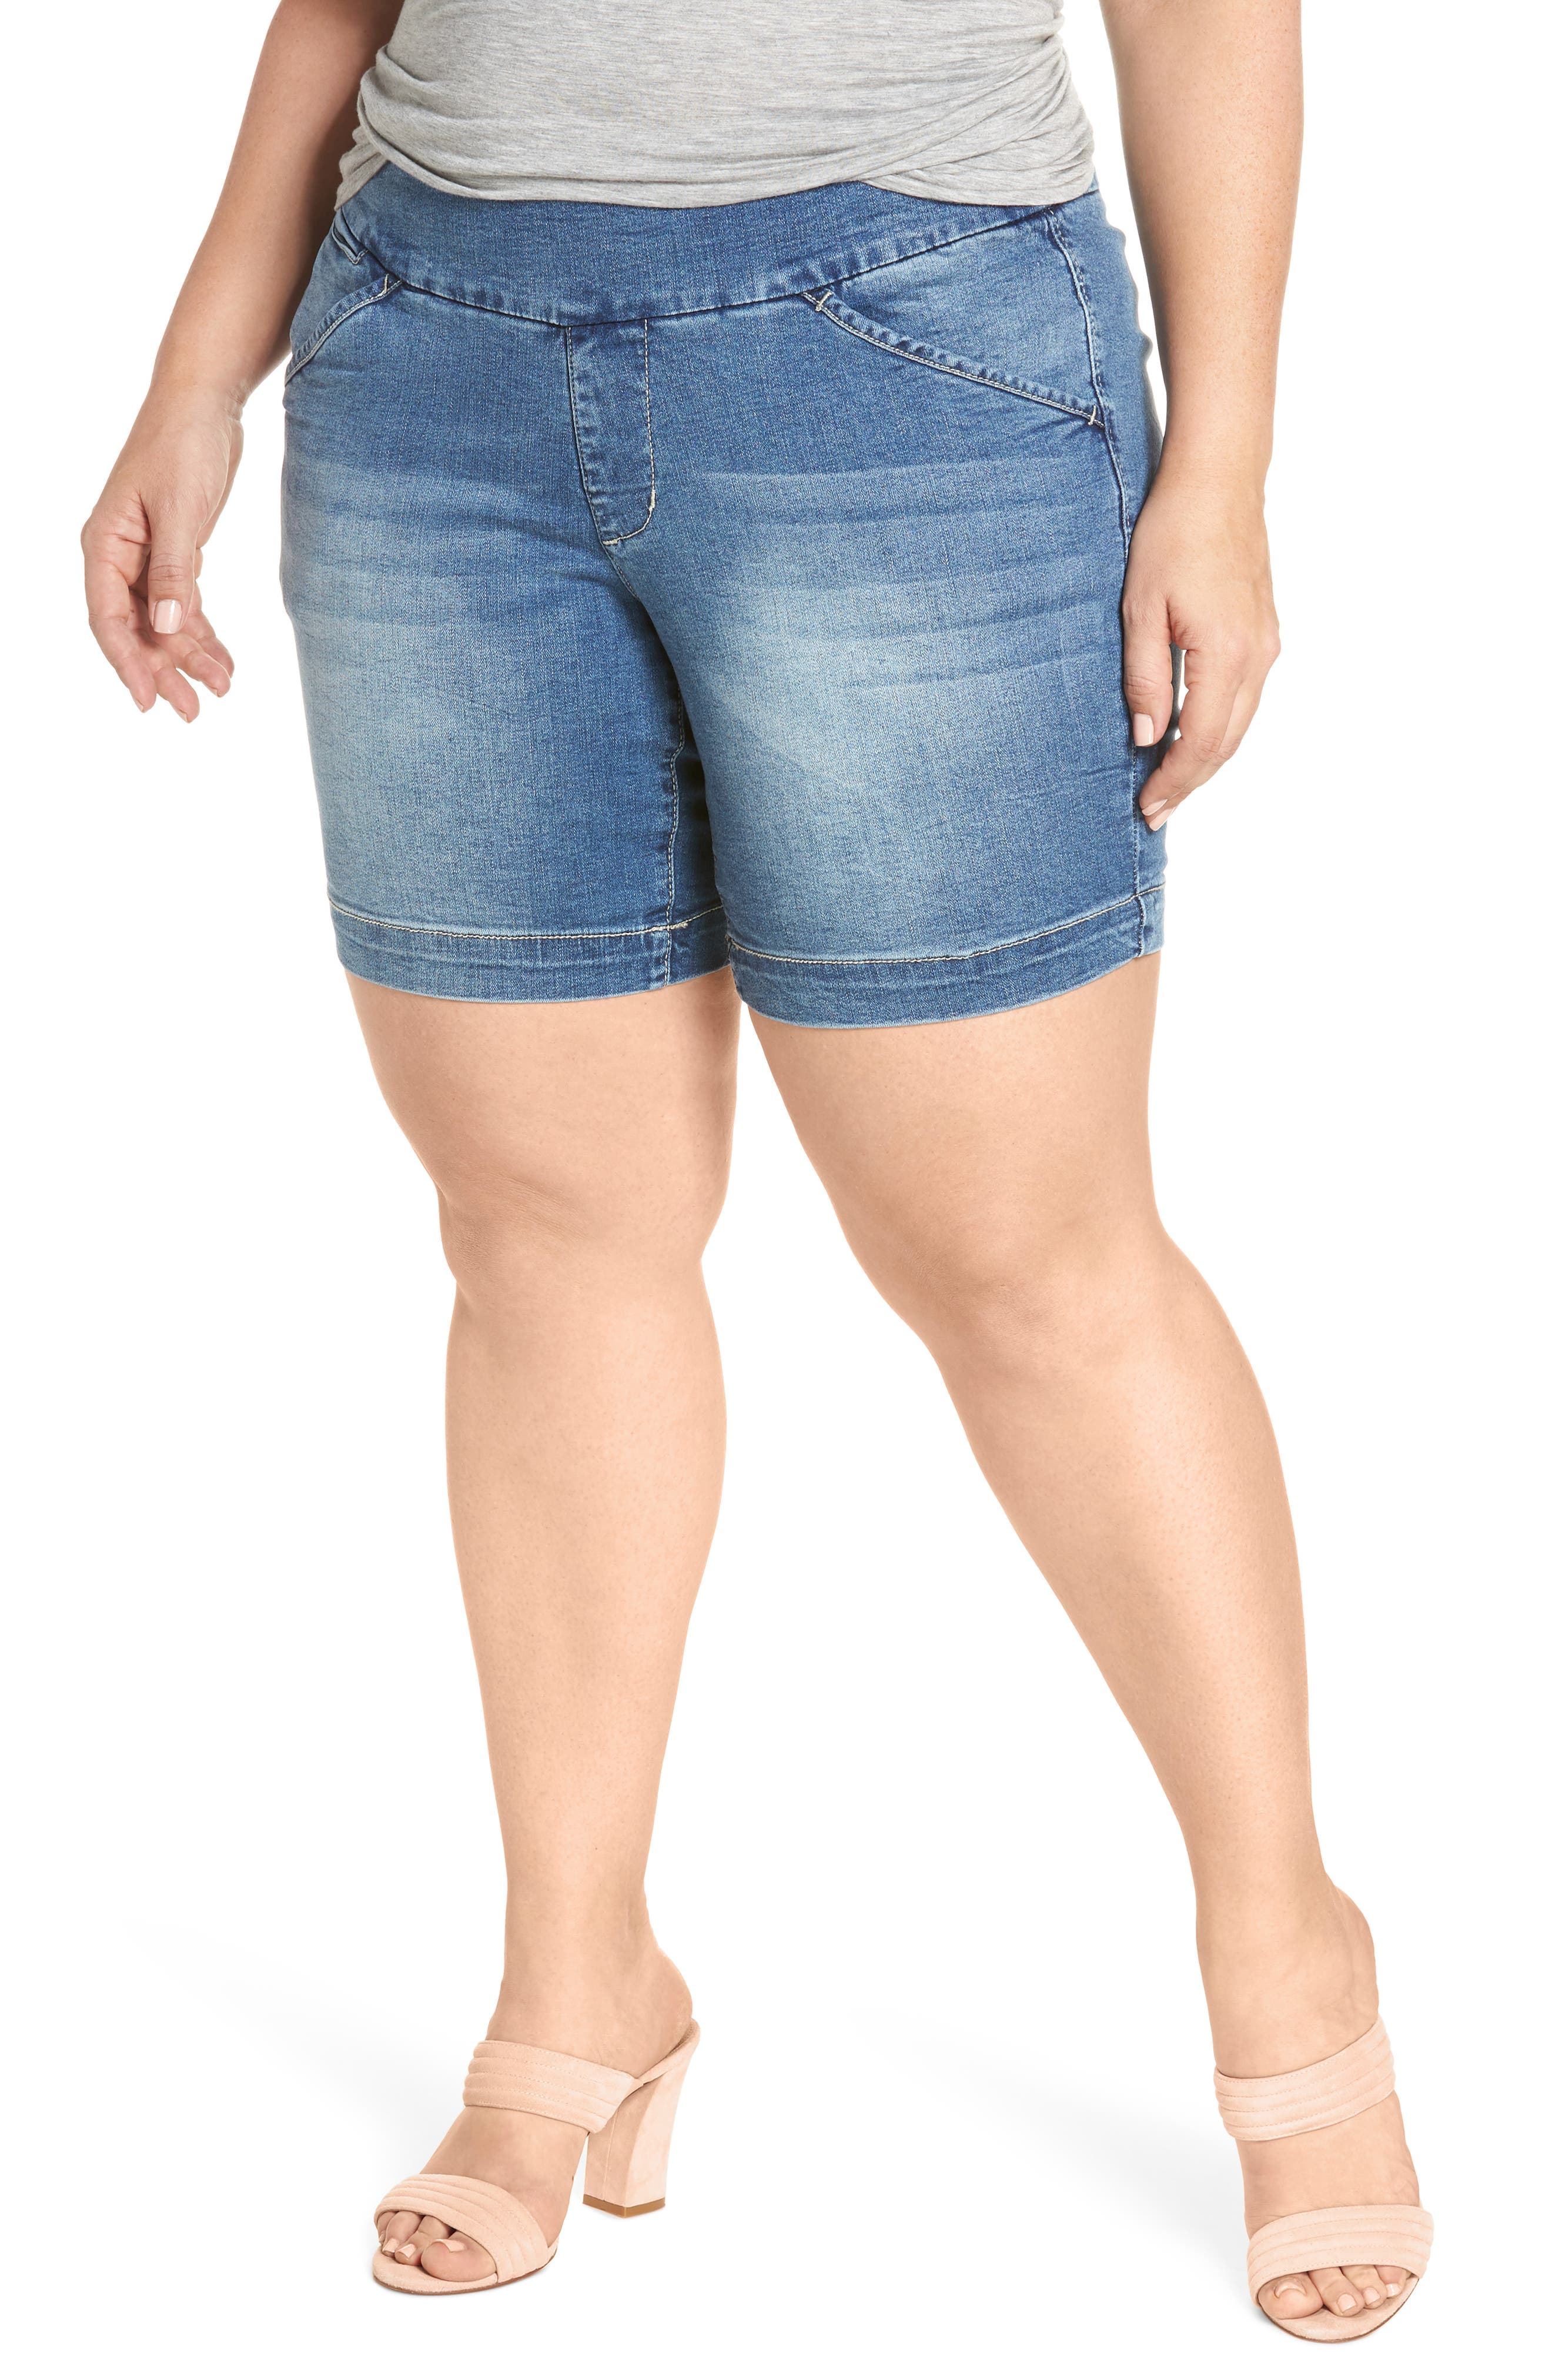 JAG JEANS,                             Ainsley Pull-On Stretch Denim Shorts,                             Main thumbnail 1, color,                             420